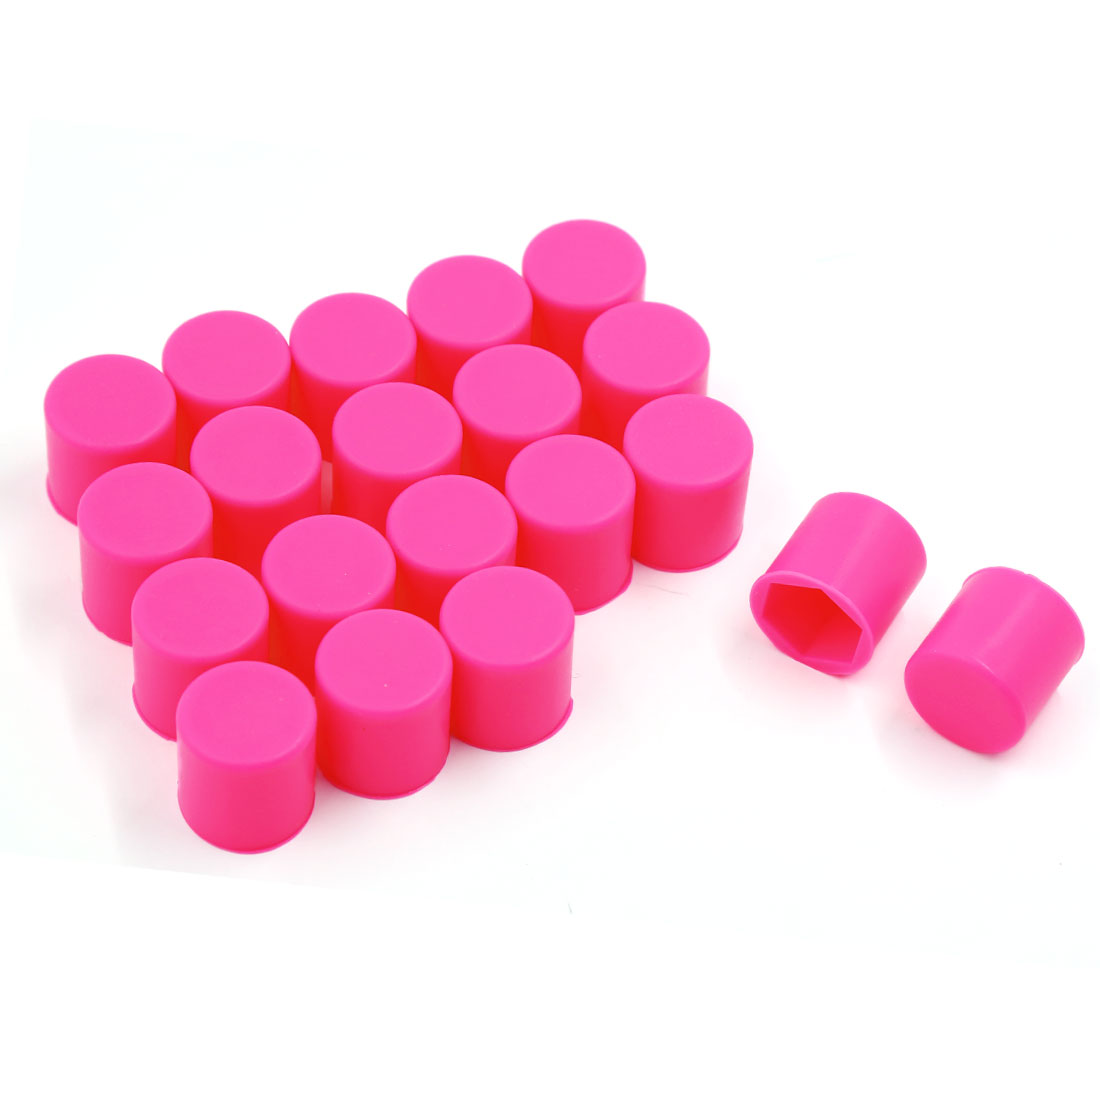 21mm Car Silicone Wheel Lug Nut Bolt Cover Tyre Screw Protective Cap Fuchsia 20 Pcs